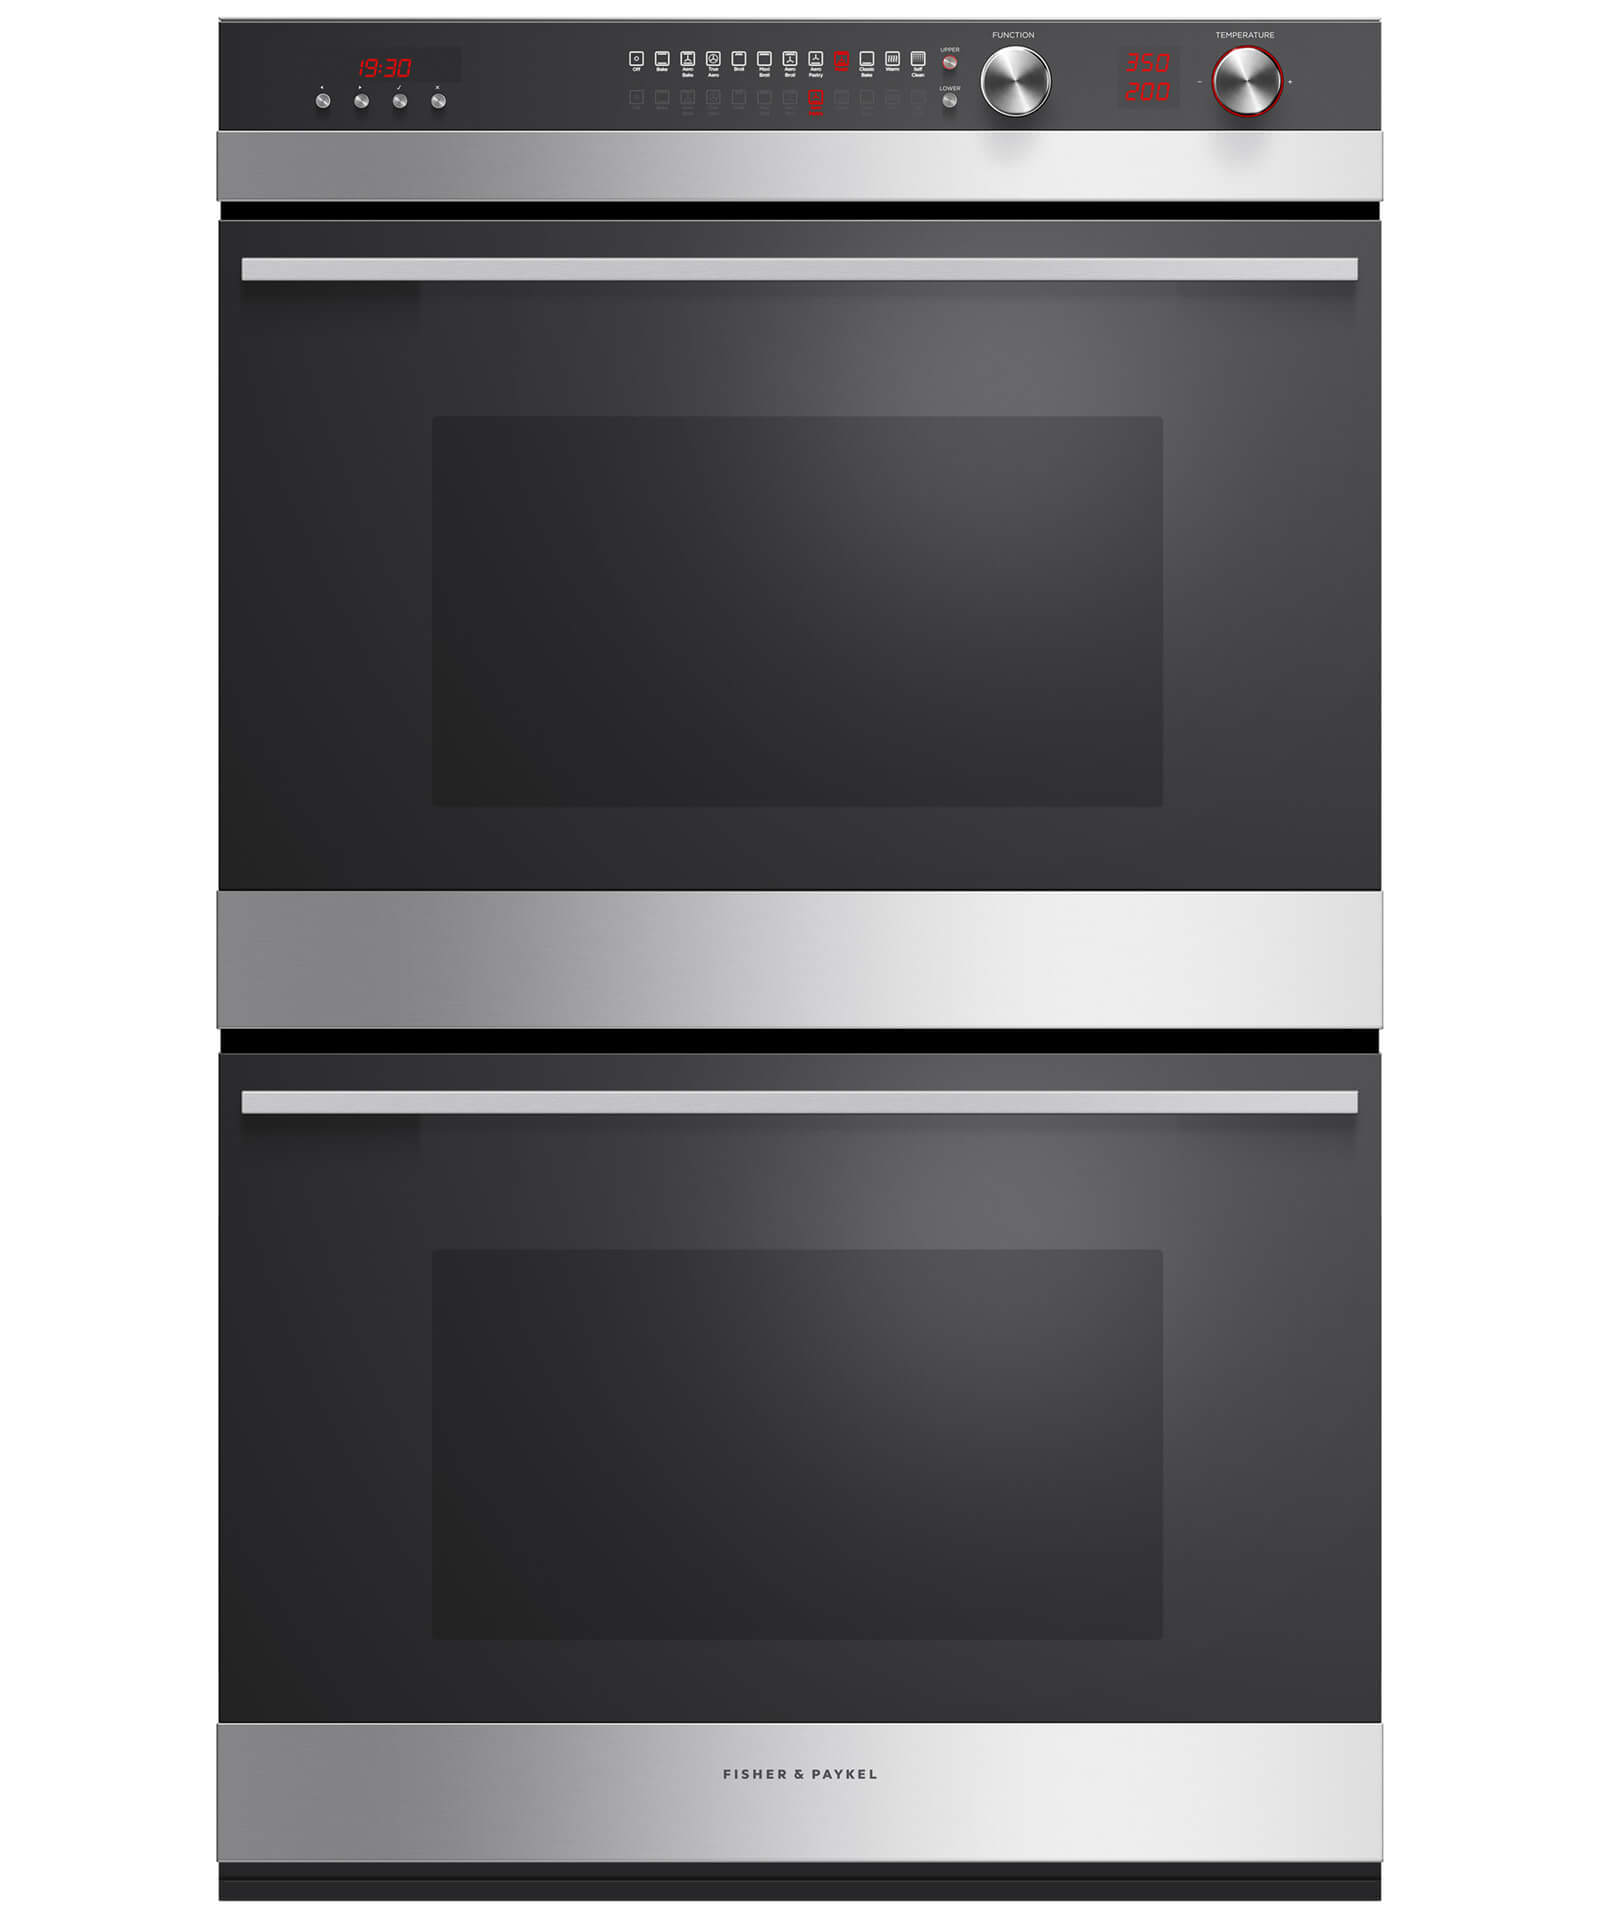 Fisher and Paykel DISPLAY MODEL---Double Built-in Oven, 30 8.2 cu ft, 11 Function